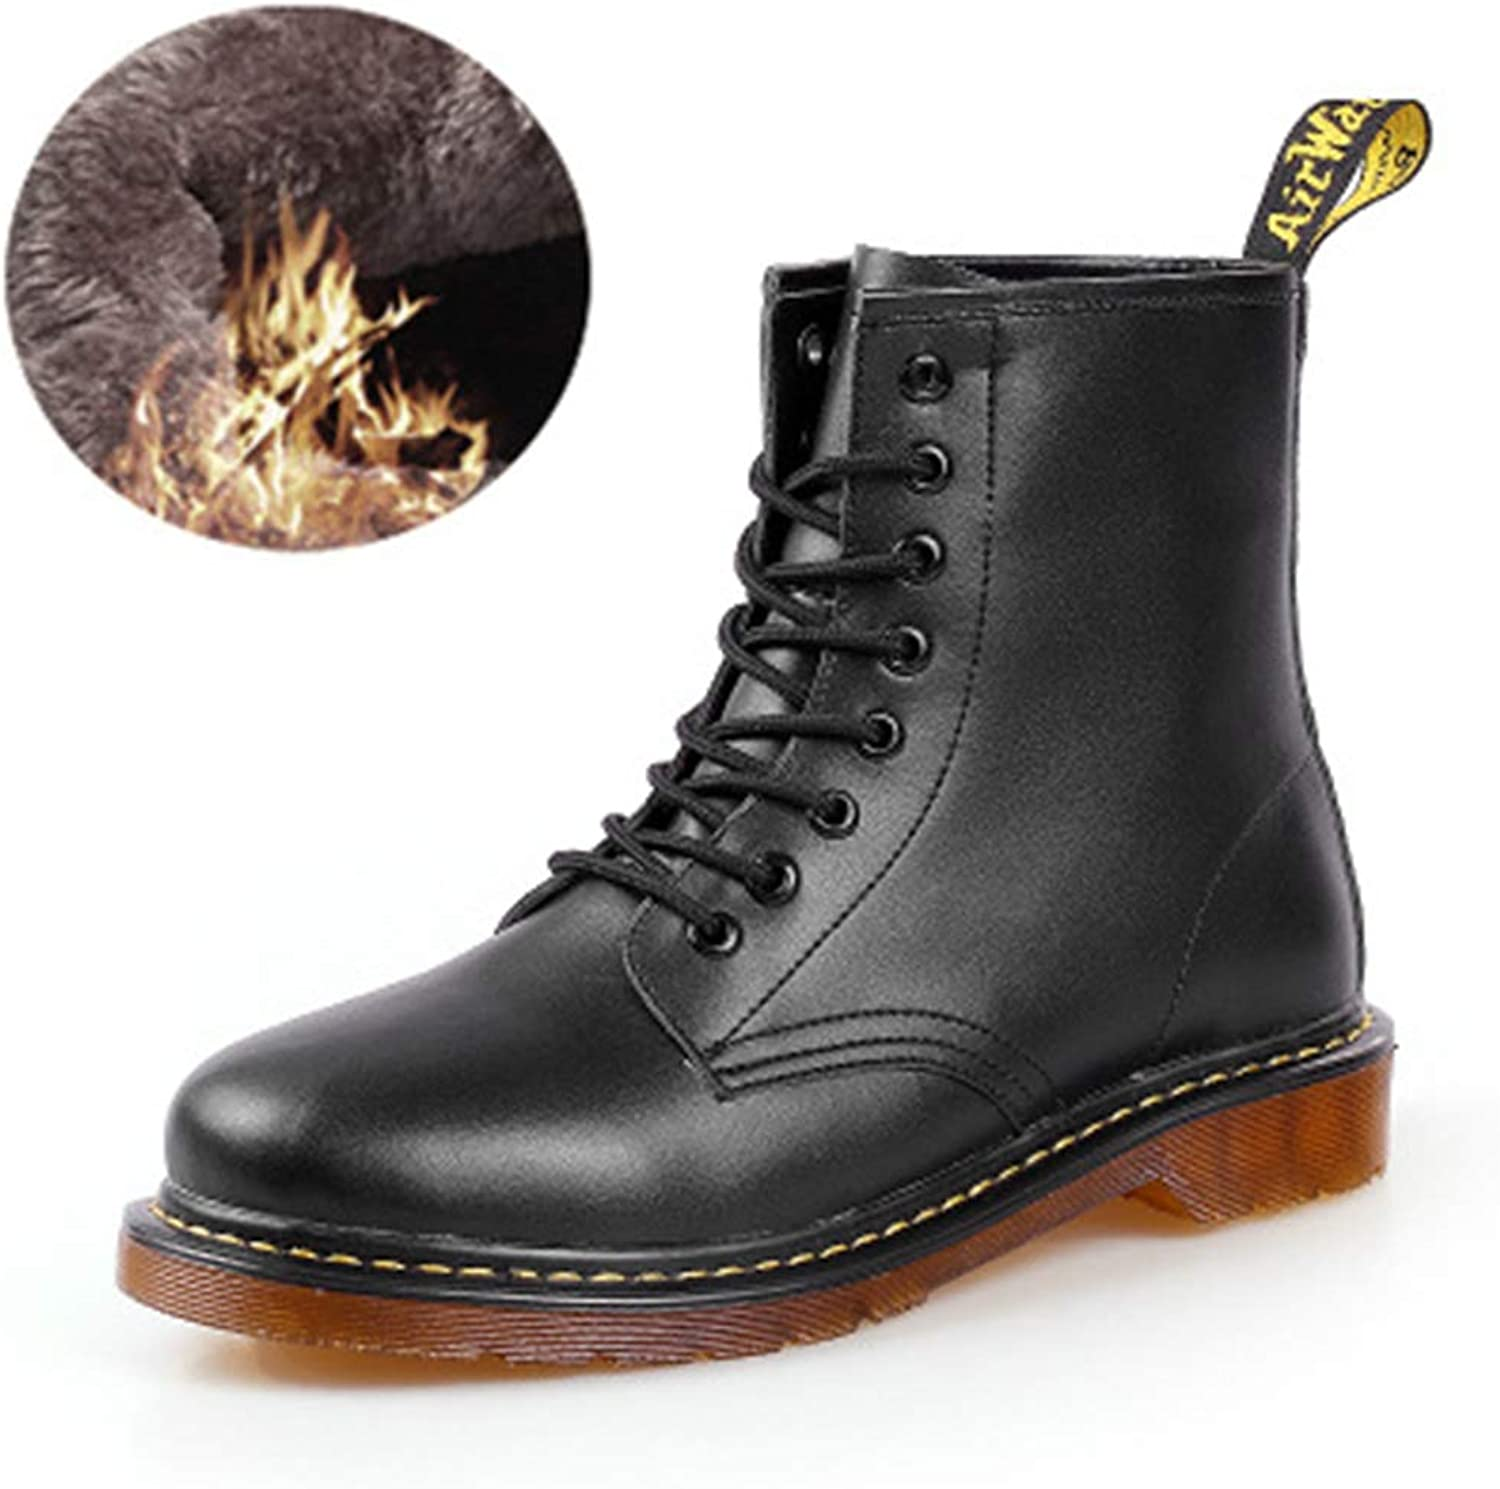 KAOKAOO Couple Military Lace-up shoes Combat Boots Ankle